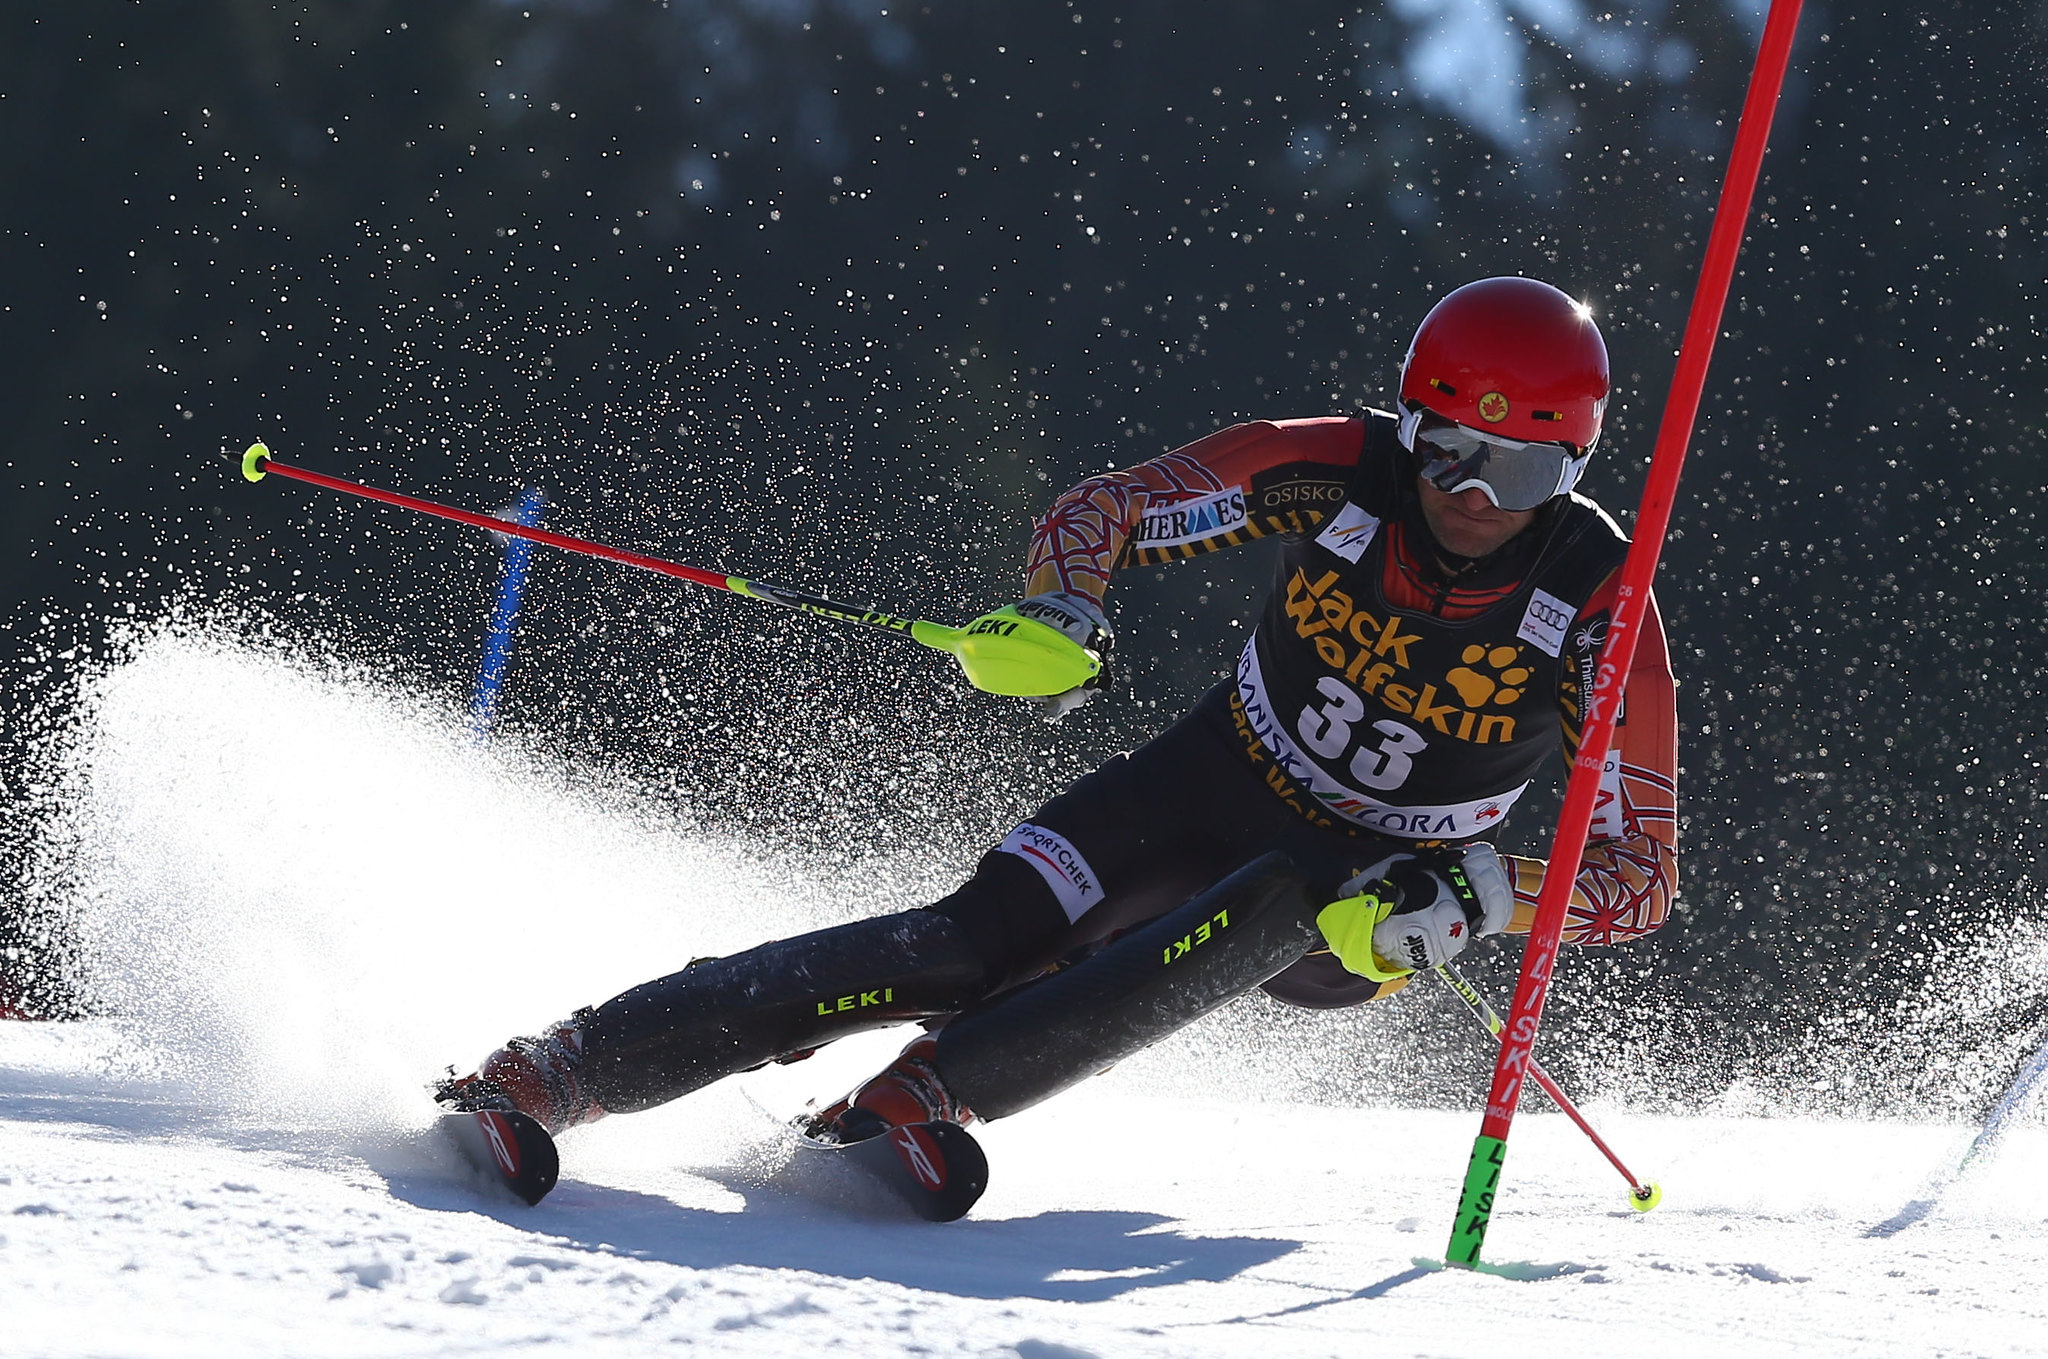 Michael Janyk in action at the final World Cup stop of his career in Kranjska Gora, SLO